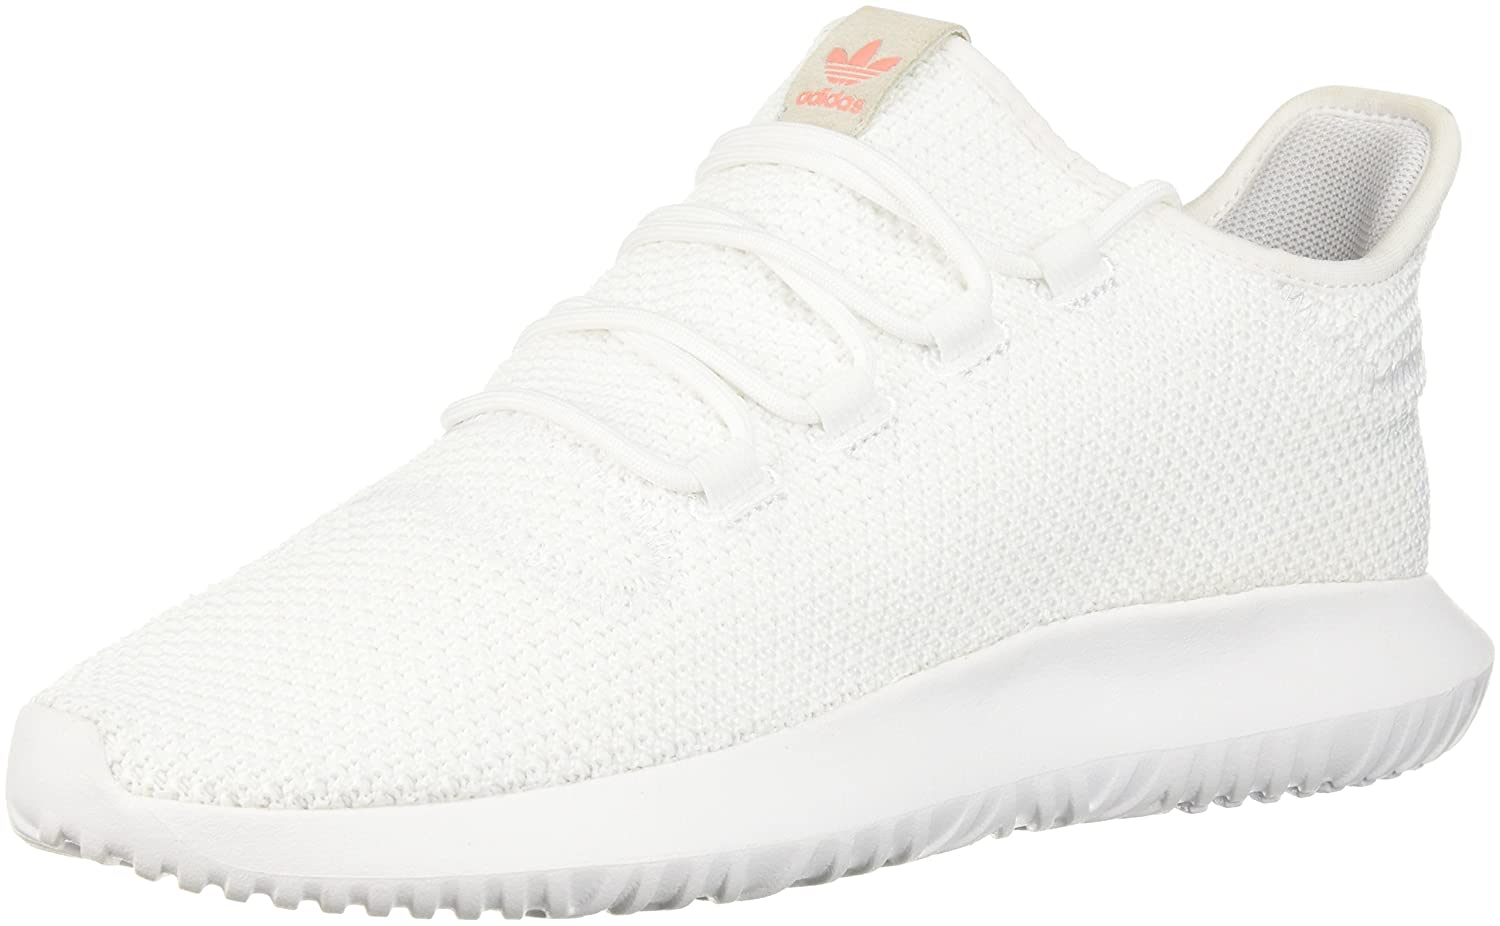 adidas Originals Women's Tubular Shadow W Fashion Sneaker B071S6L7M9 9 B(M) US|White/White/Core Black